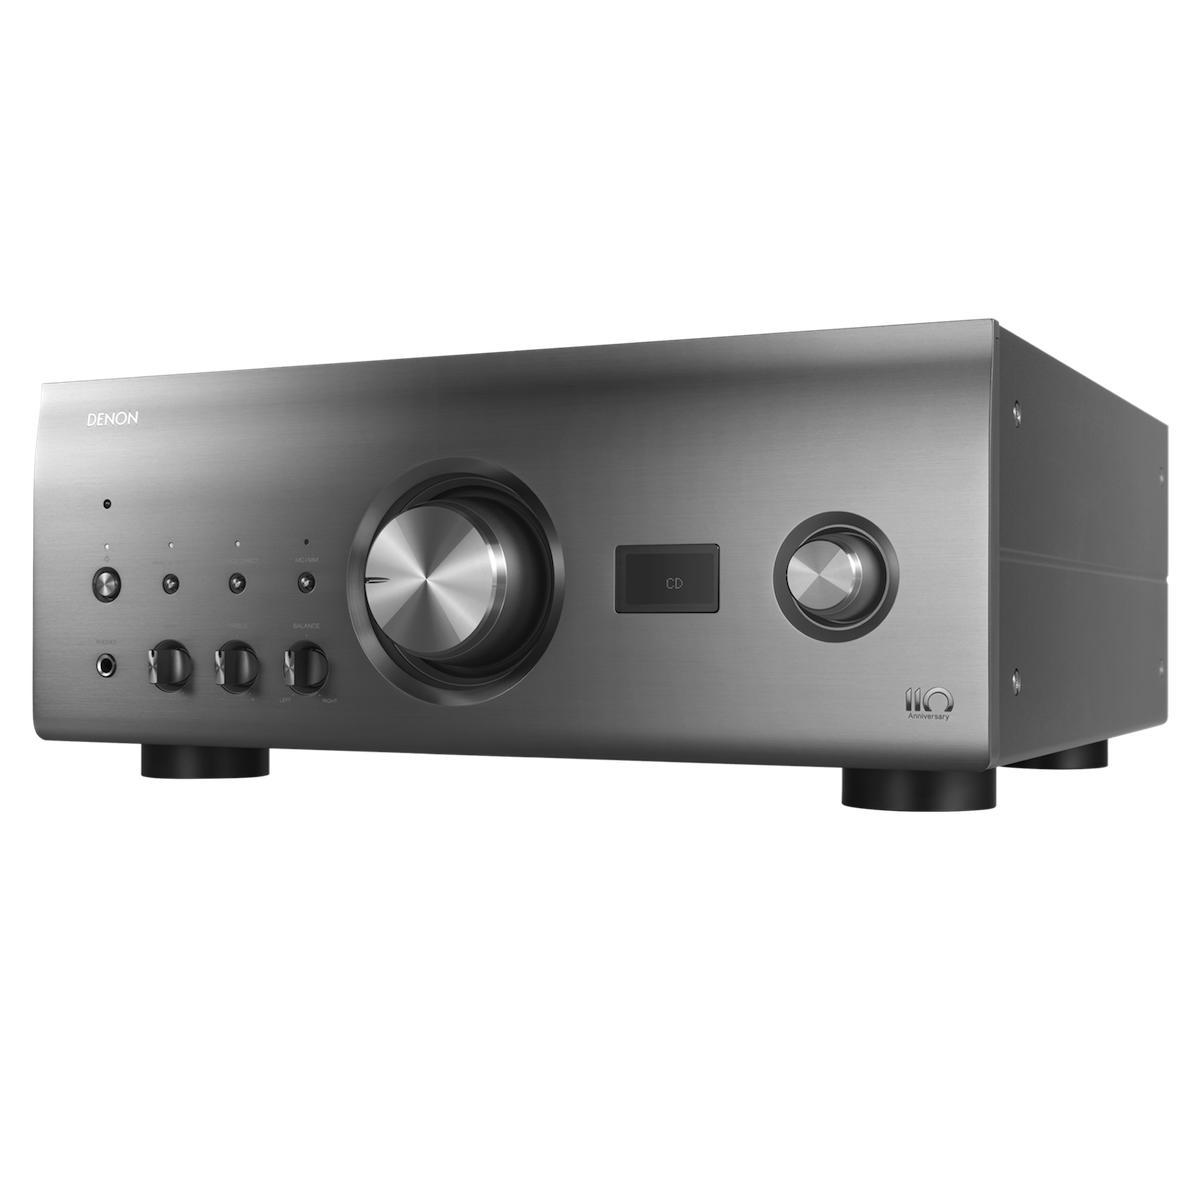 Denon PMA-A110 - Integrated Stereo Amplifier, Denon, Integrated Amplifier - AVStore.in